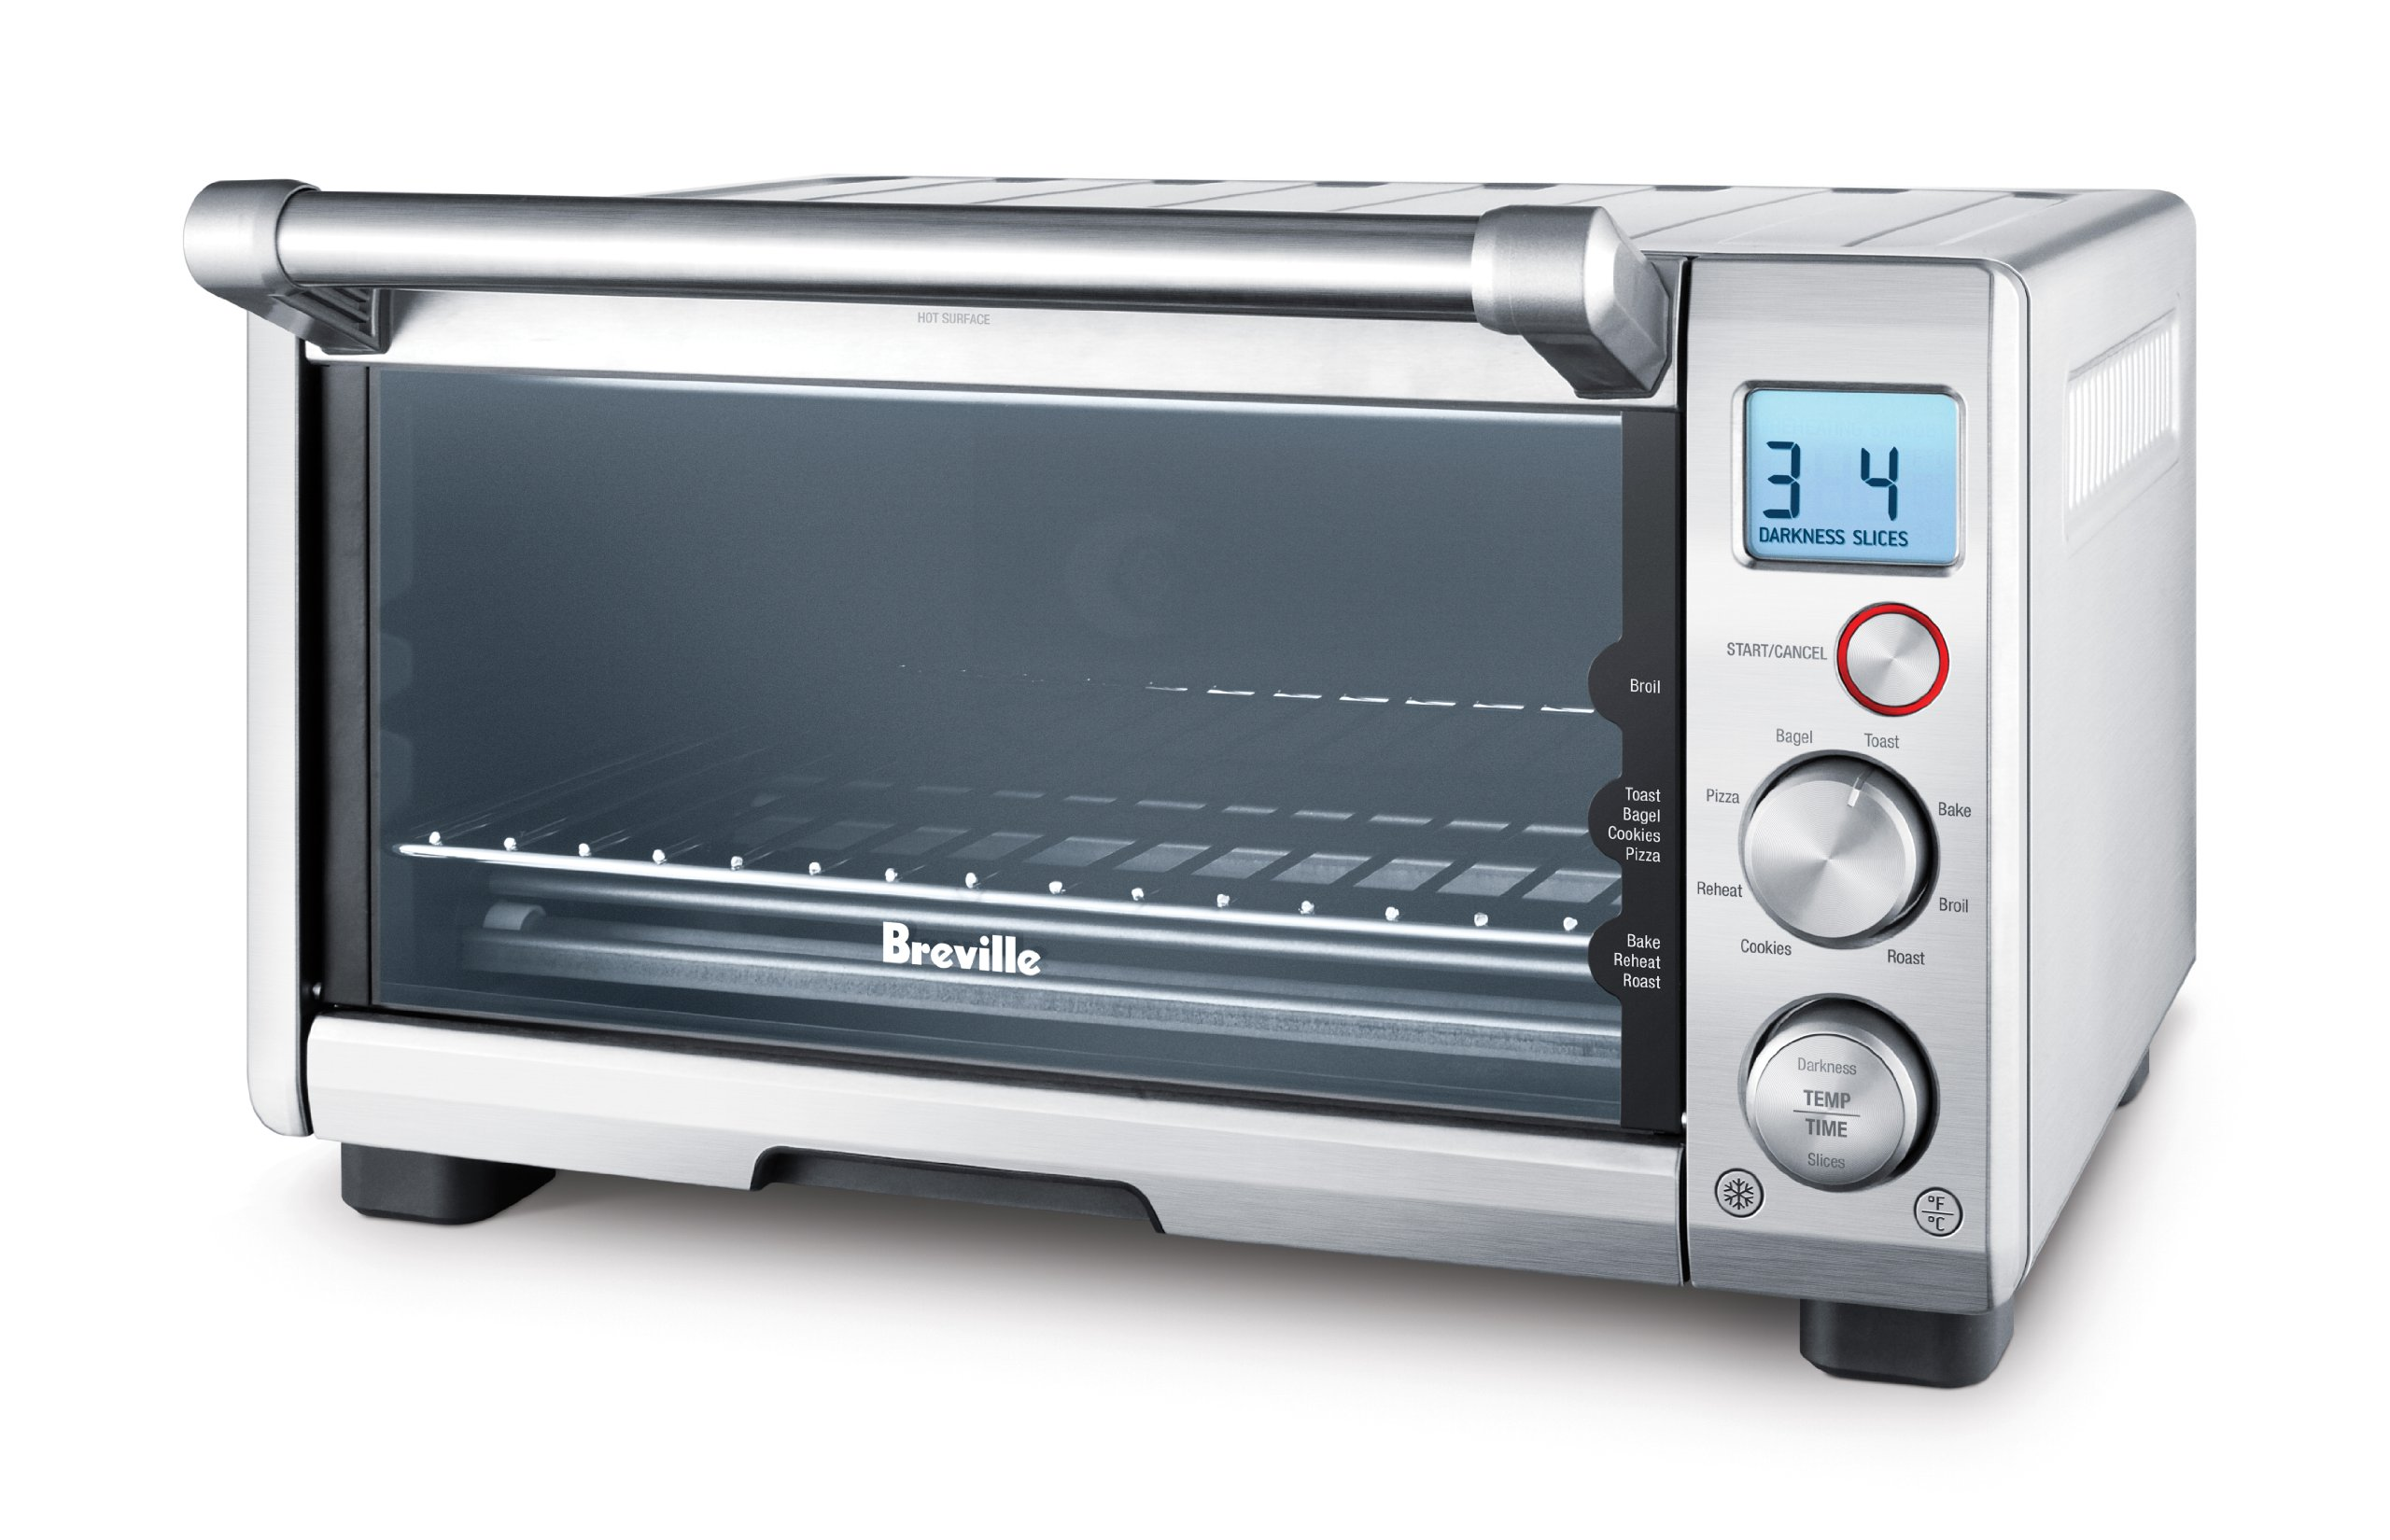 BREVILLE the Compact Smart Oven, Countertop Electric Toaster Oven BOV650XL by Breville